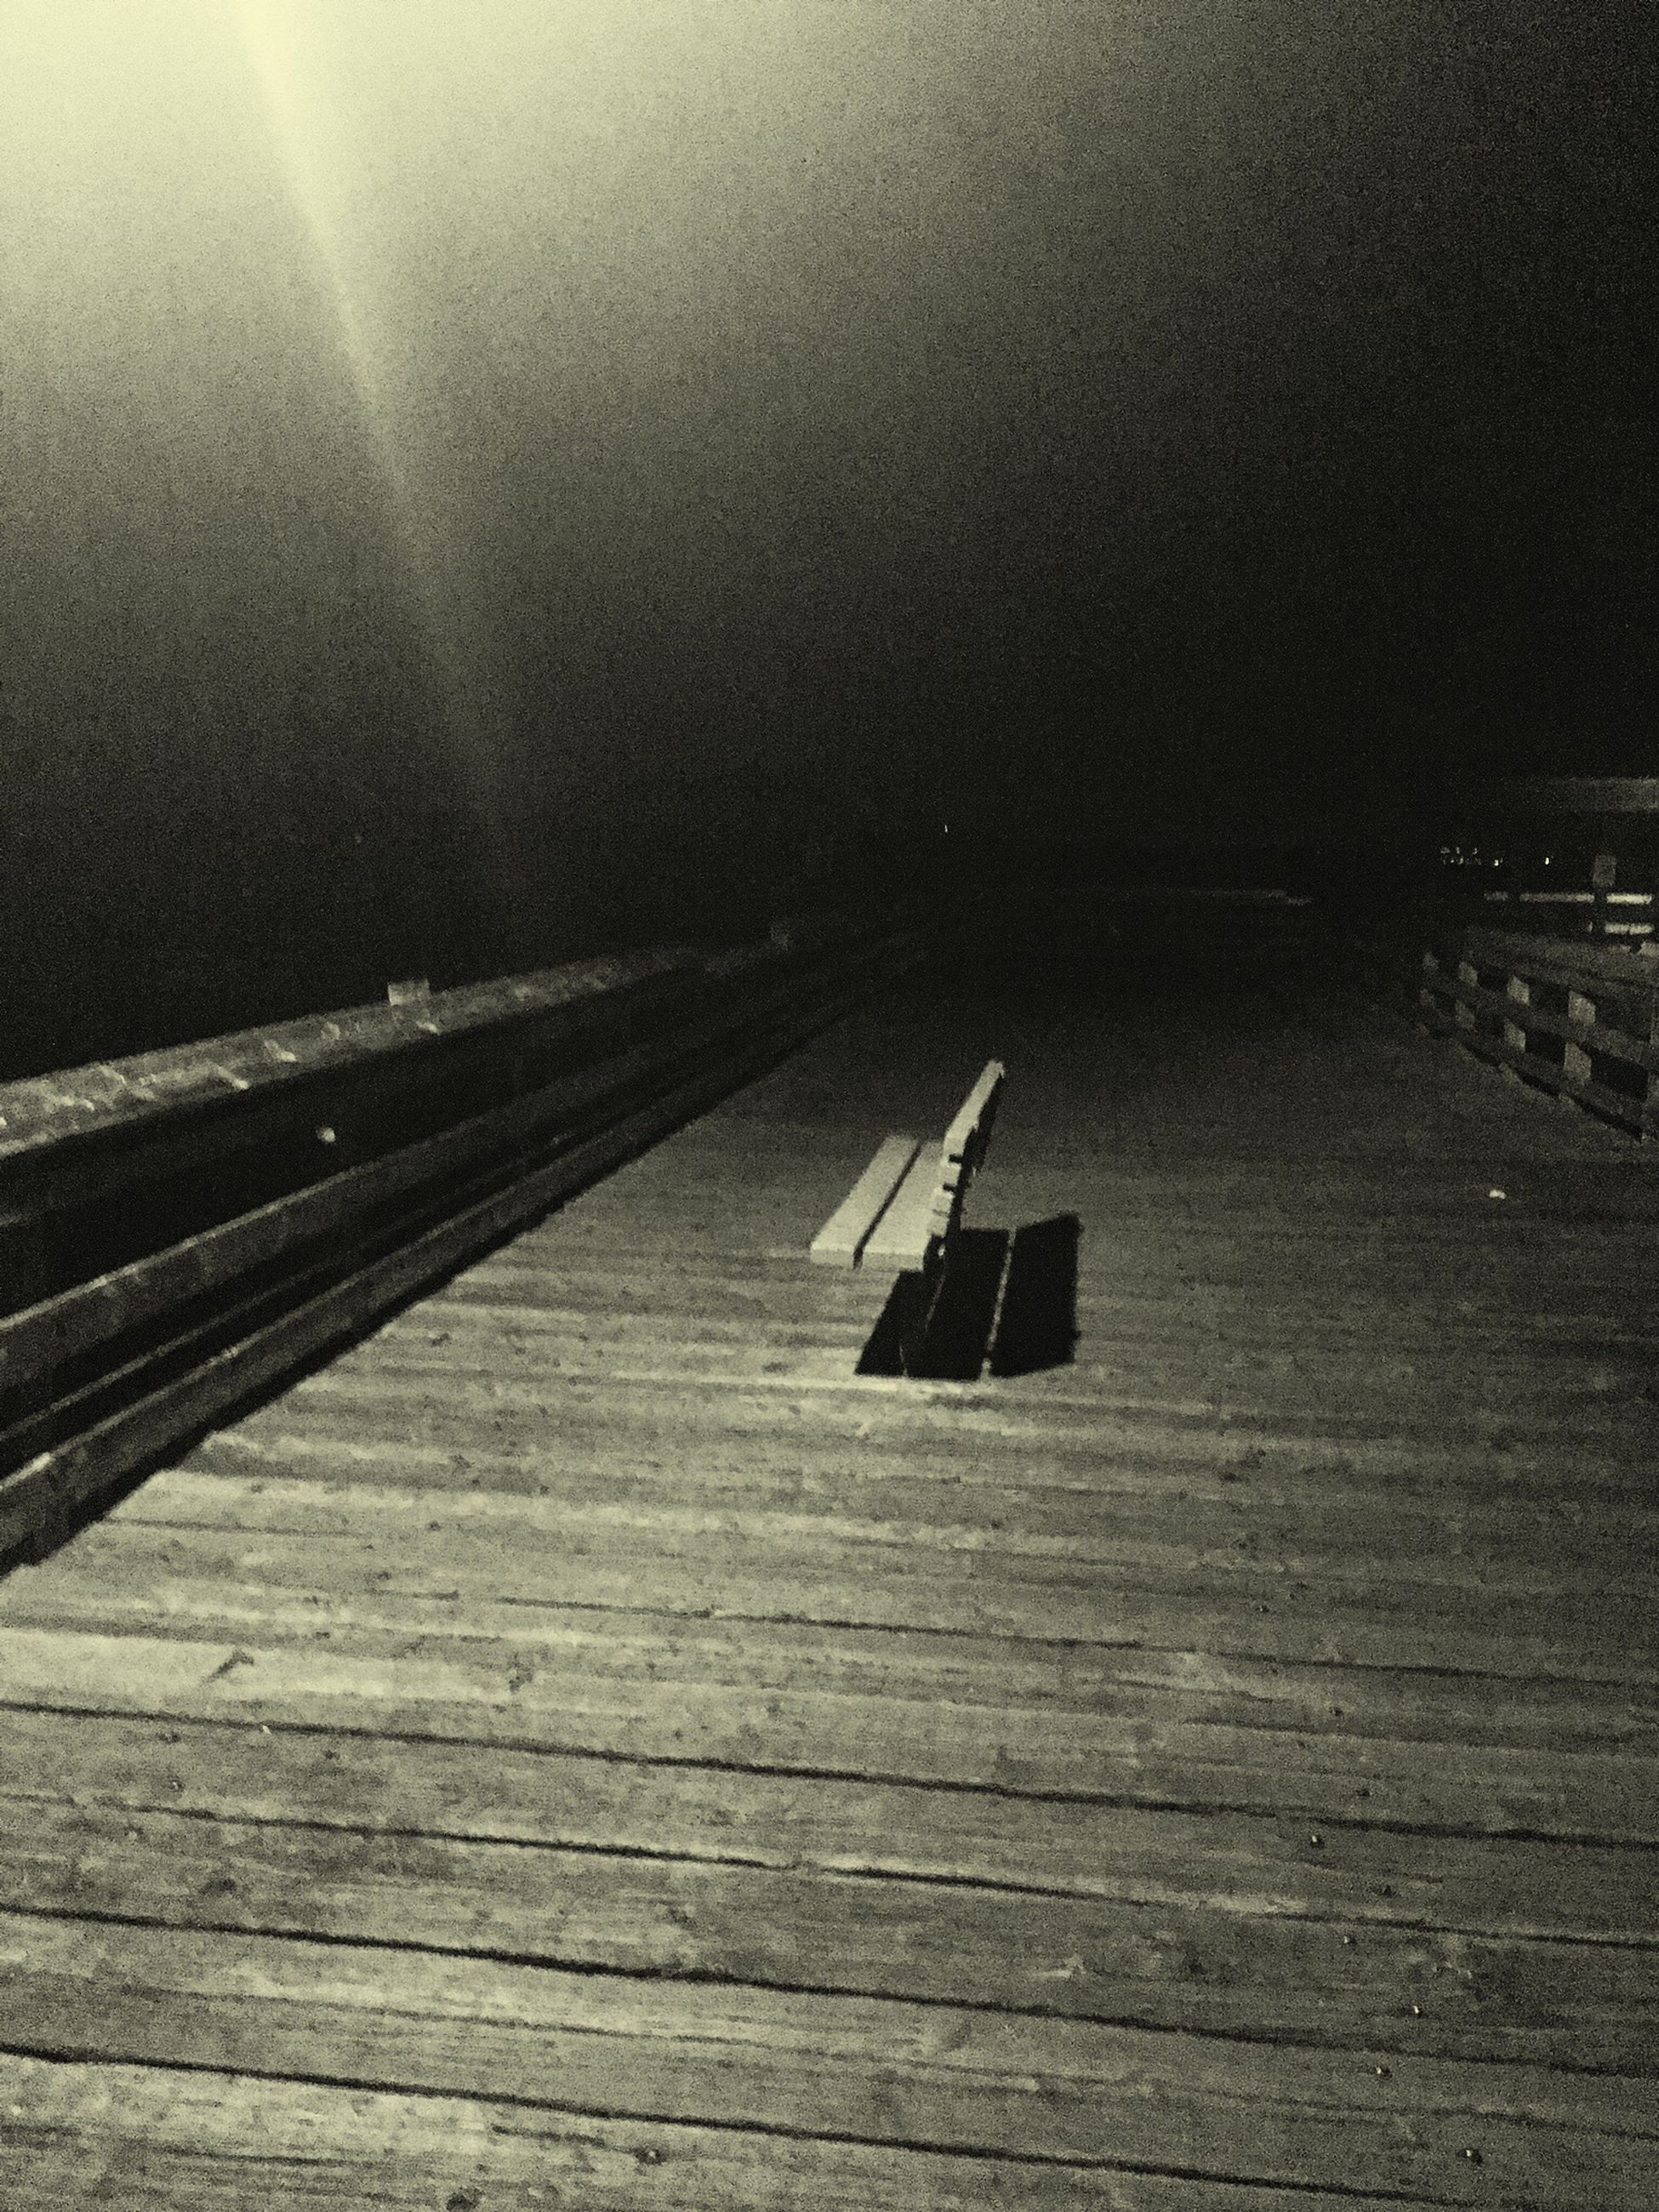 wood - material, wooden, no people, surface level, boardwalk, wood paneling